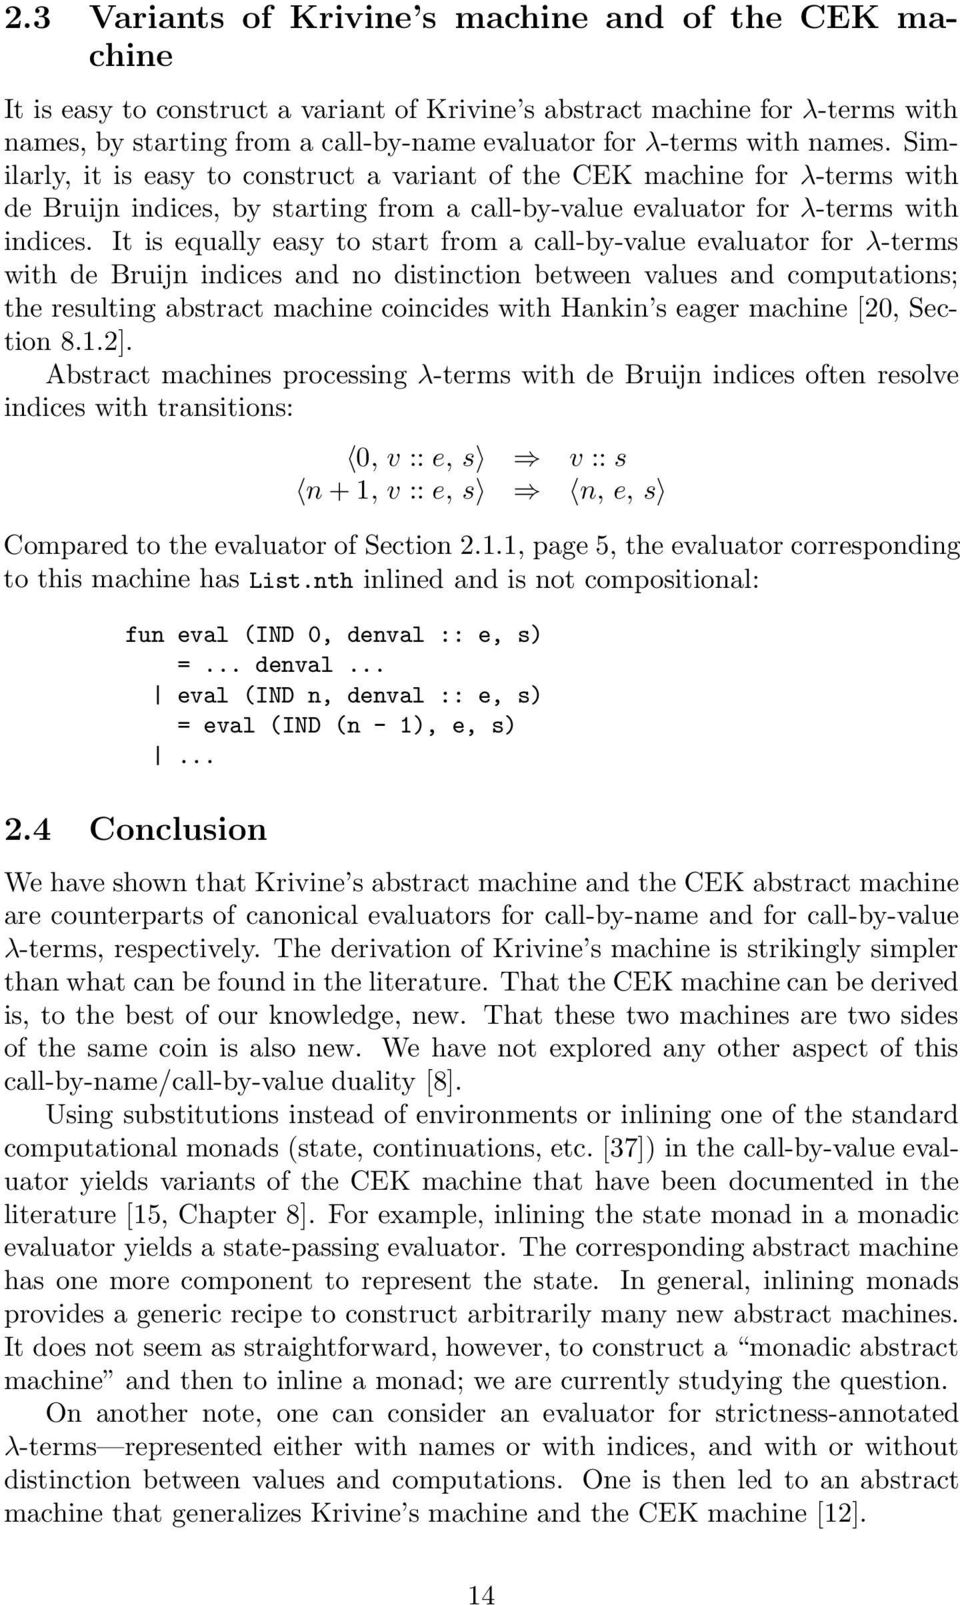 It is equally easy to start from a call-by-value evaluator for λ-terms with de Bruijn indices and no distinction between values and computations; the resulting abstract machine coincides with Hankin